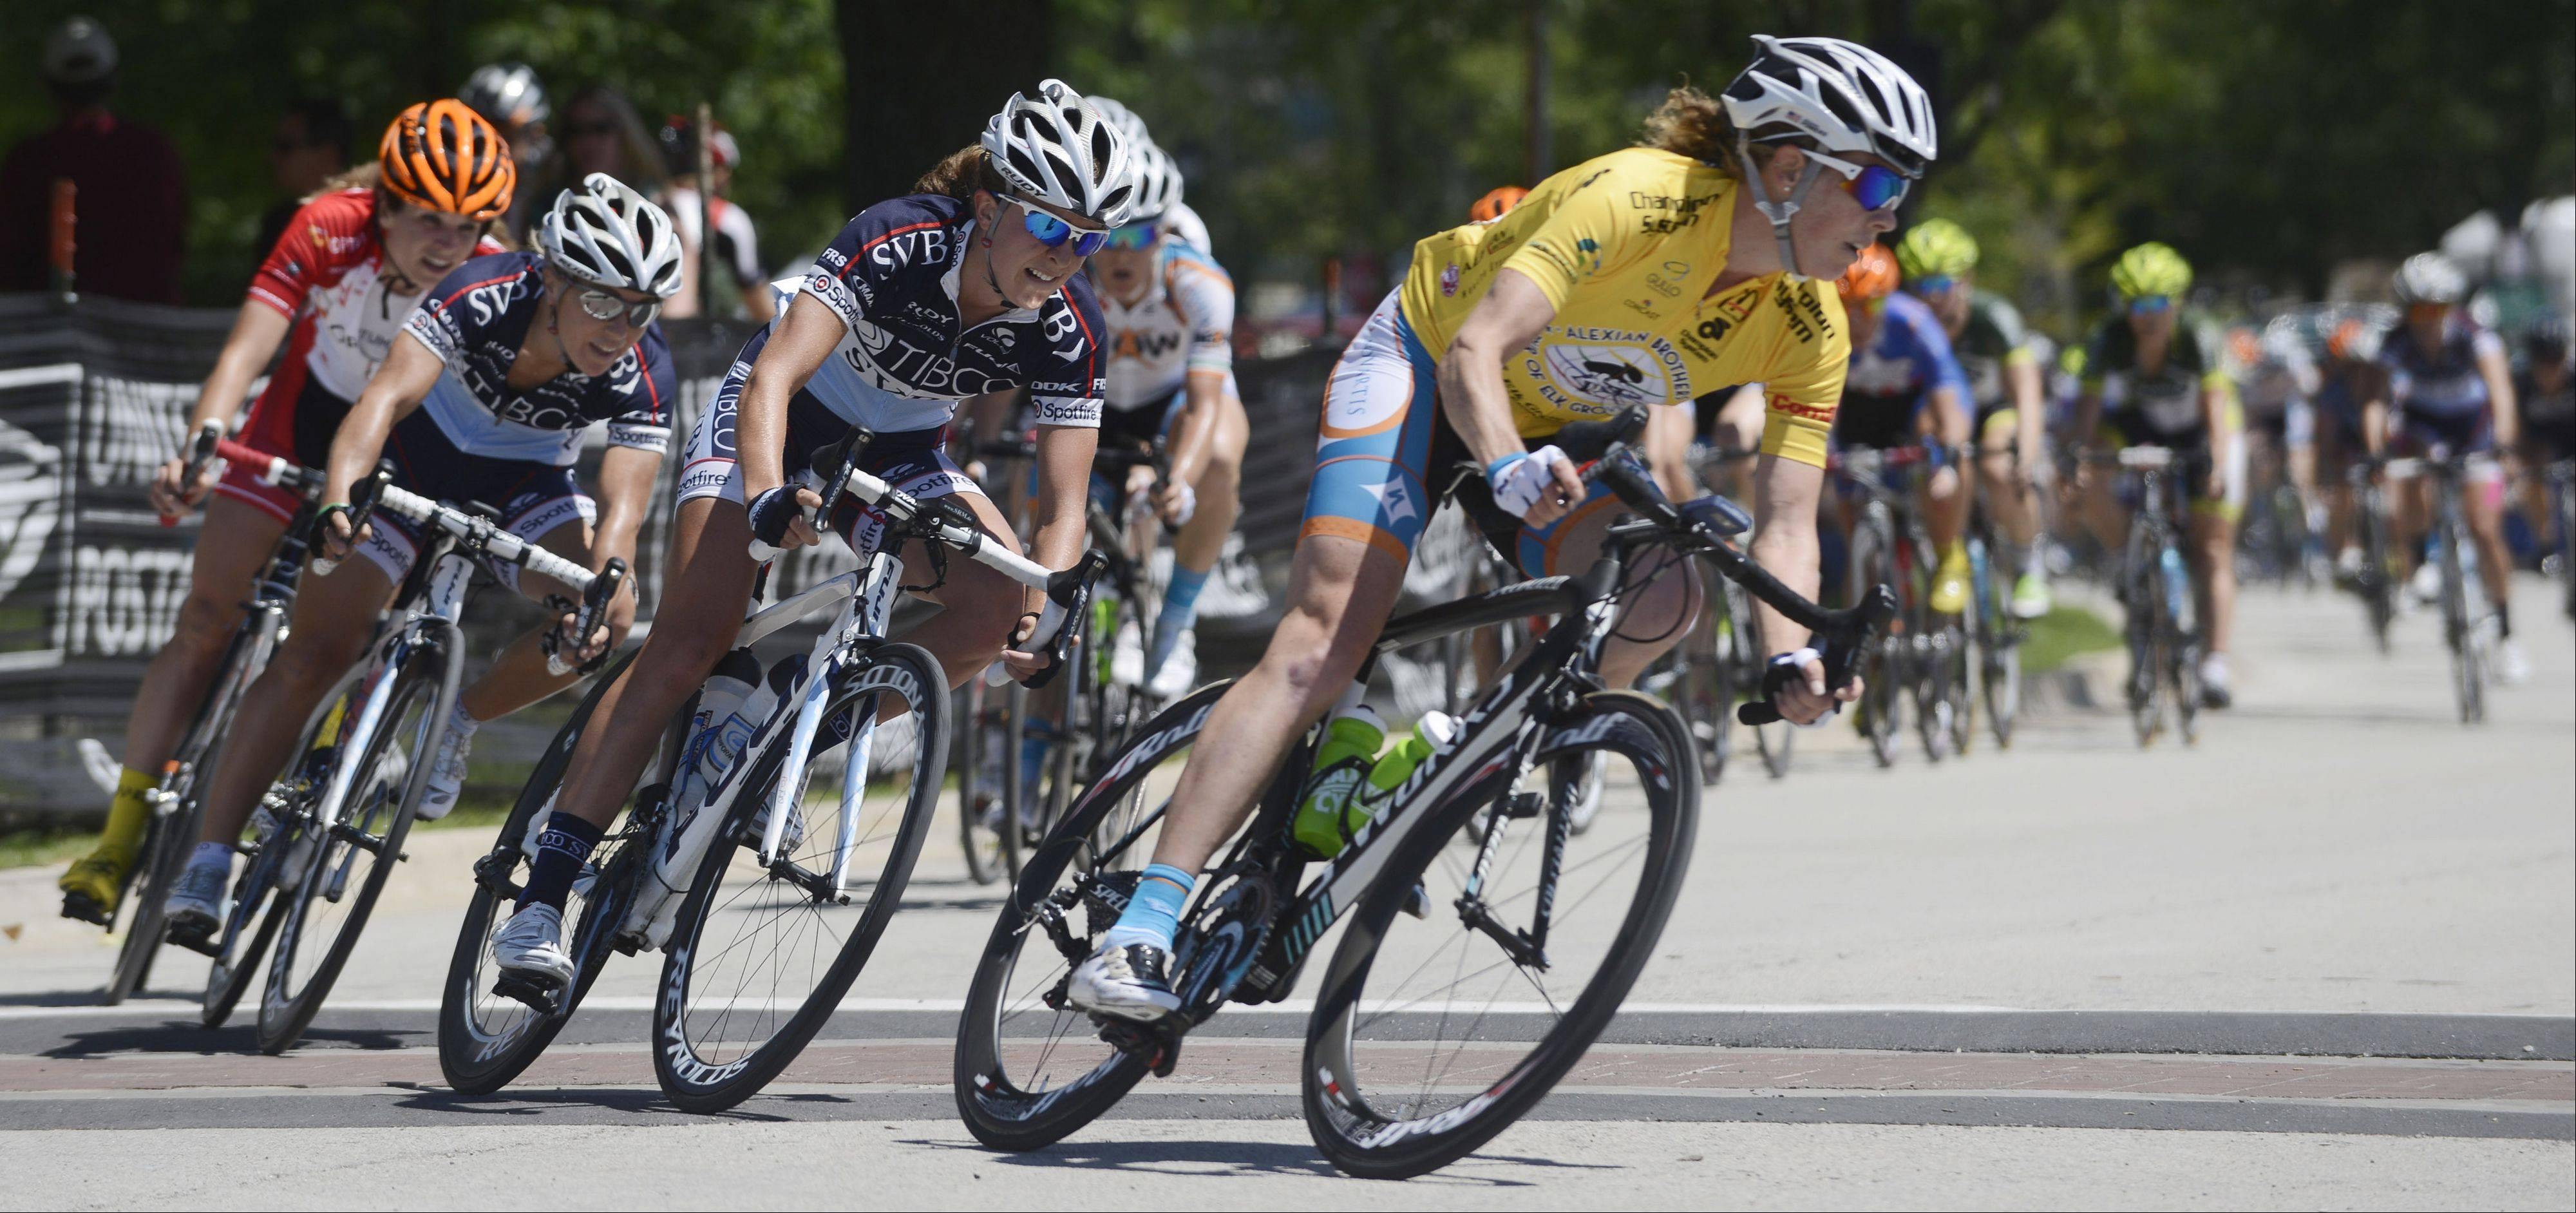 Nearly 60 riders compete in stage two of the women's pro three-day, three stage race, a 45.3-mile criterium, of the Tour of Elk Grove Saturday.